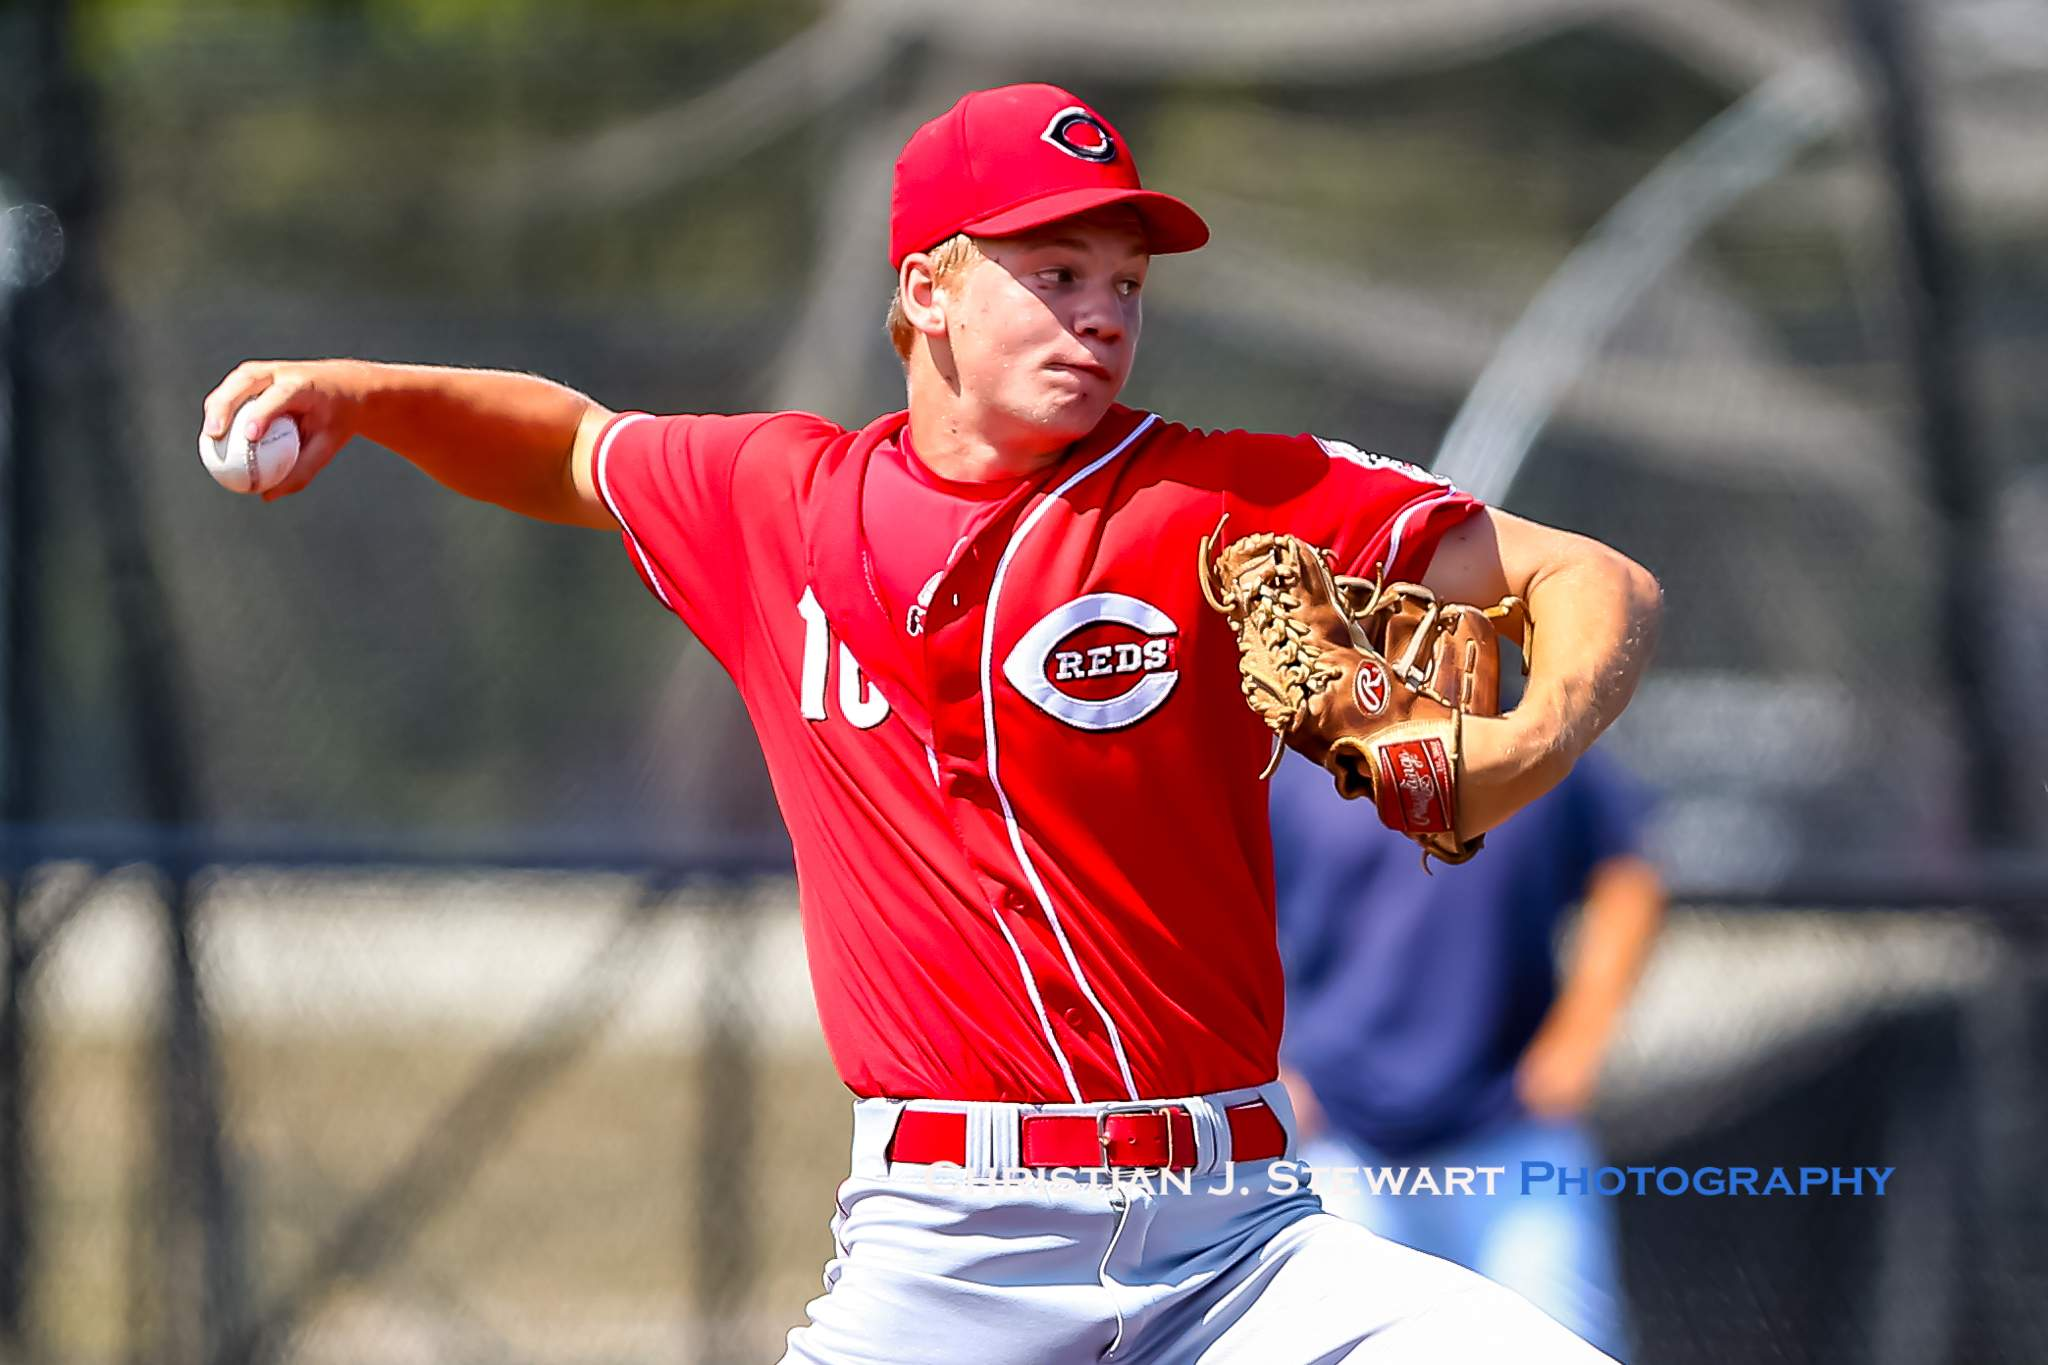 The Reds Jack Seward threw a complete-game four-hitter to defeat Langley 5-2 Saturday afternoon (Photo: Christian J. Stewart)